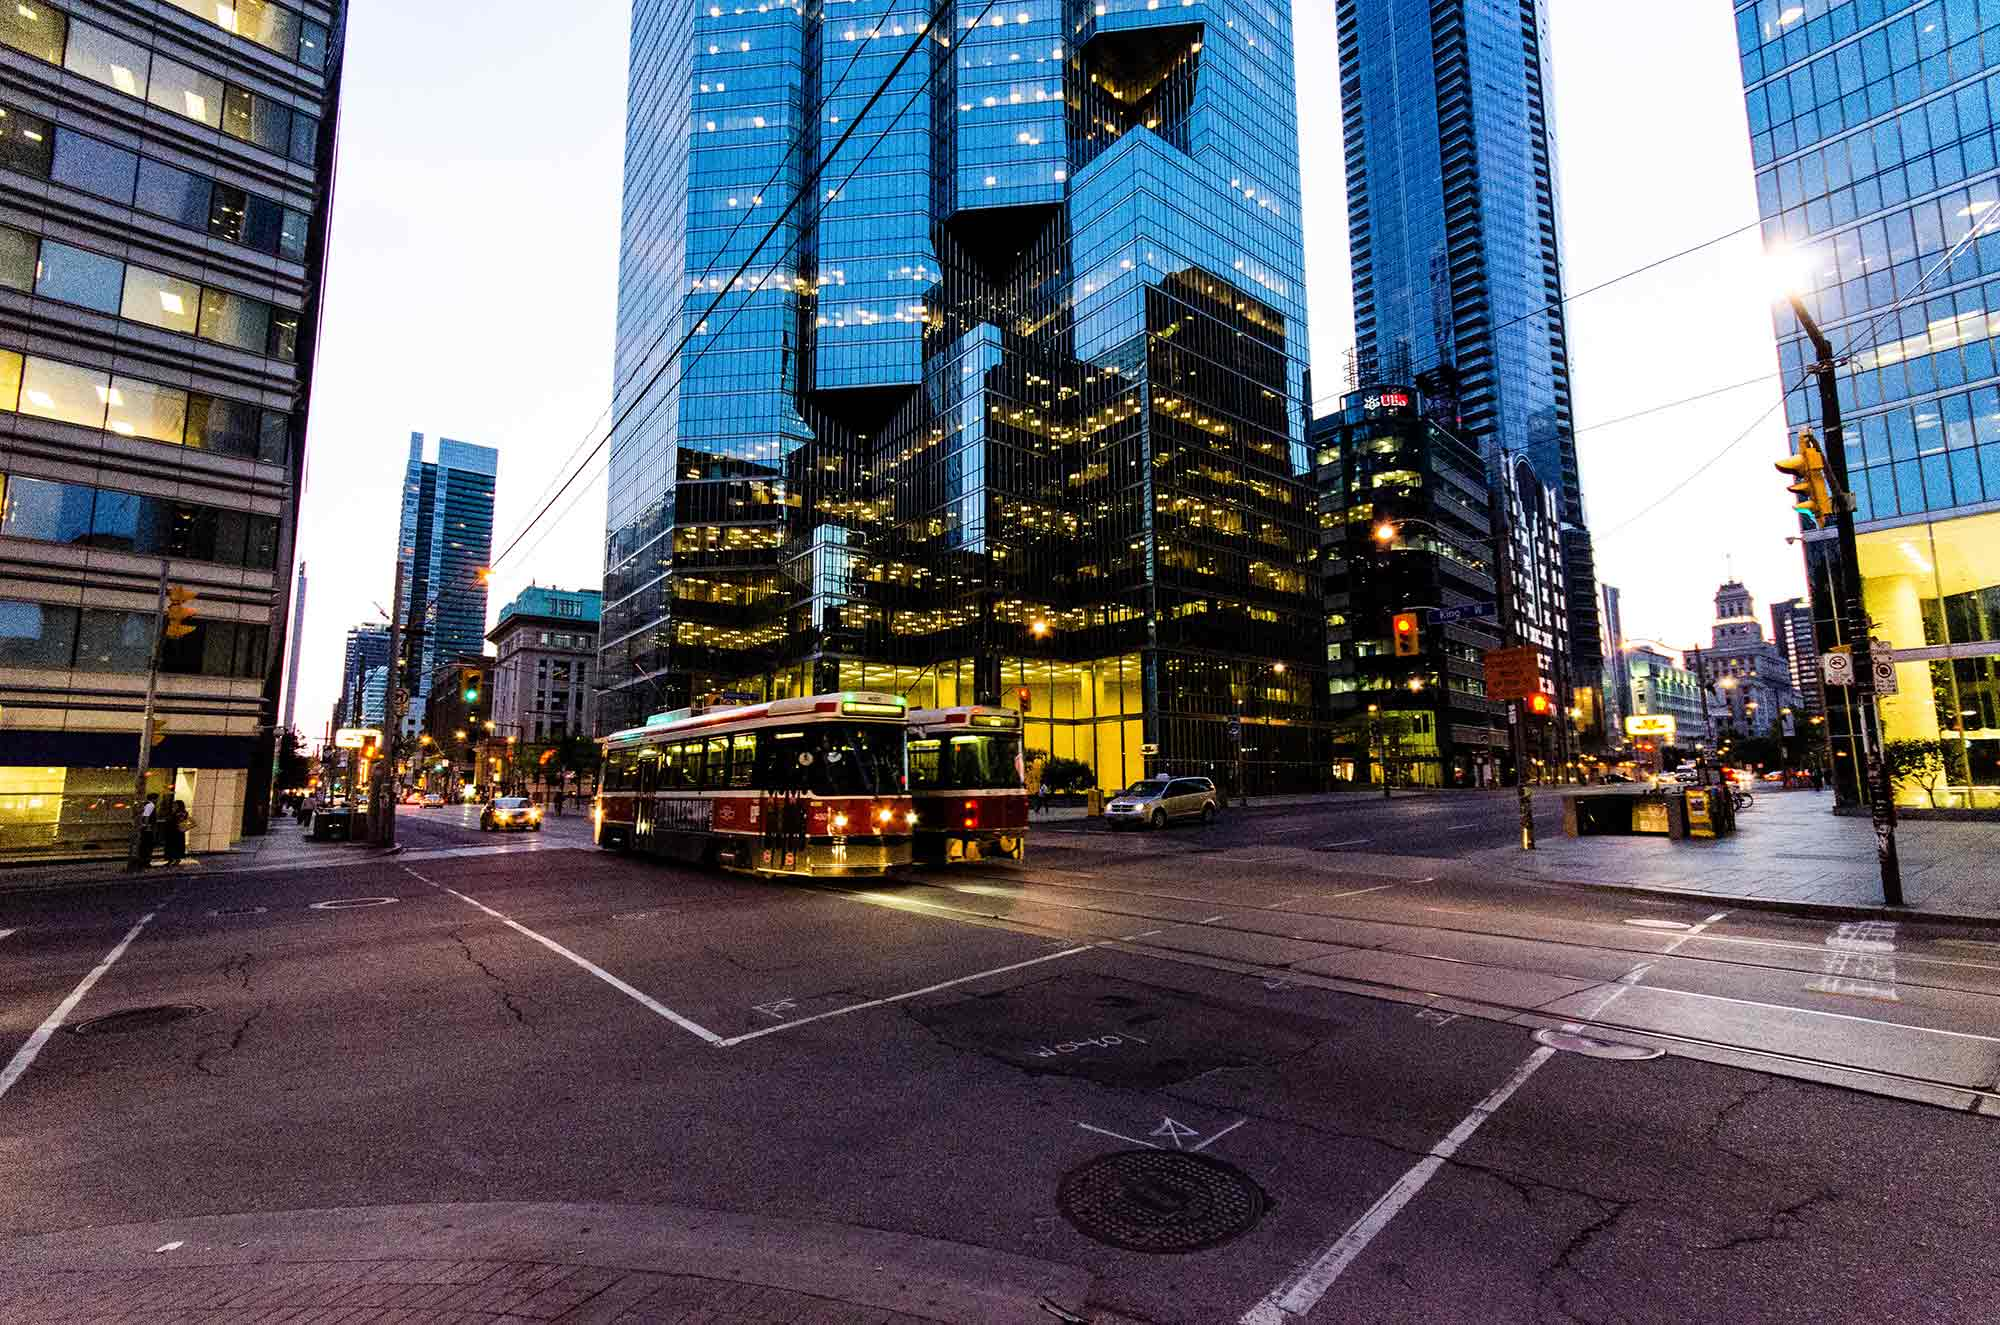 Le quartier des affaires, Toronto